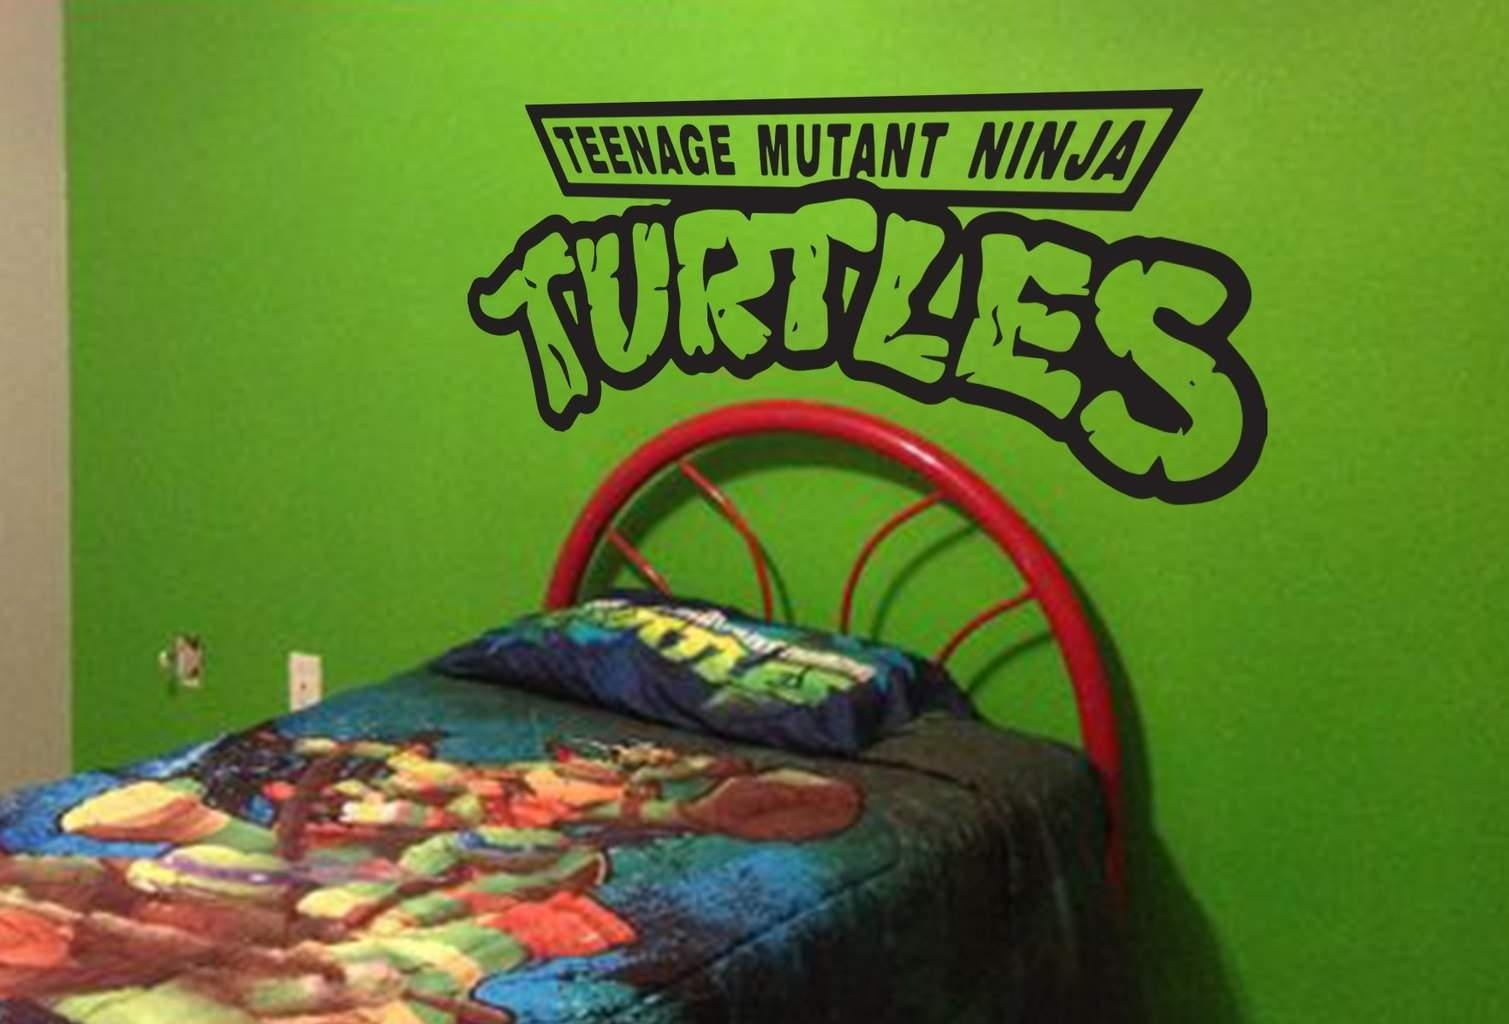 Turtles Are Here To Protect, Ninjaturtles Wall Decal Inside 2018 Ninja Turtle Wall Art (View 19 of 20)